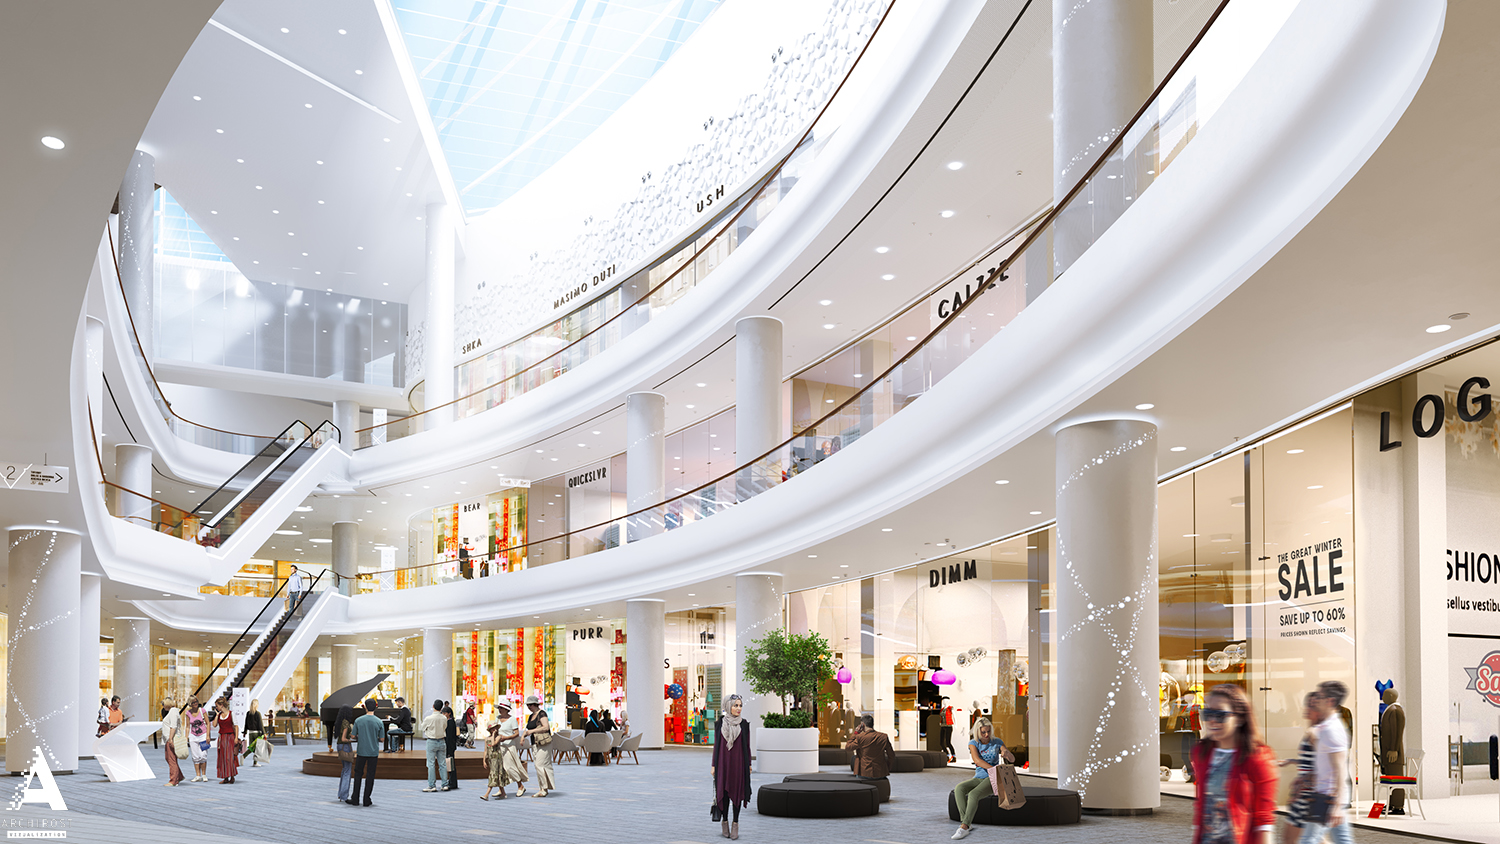 Grozny Mall Visualization Of One Of The Biggest Shopping